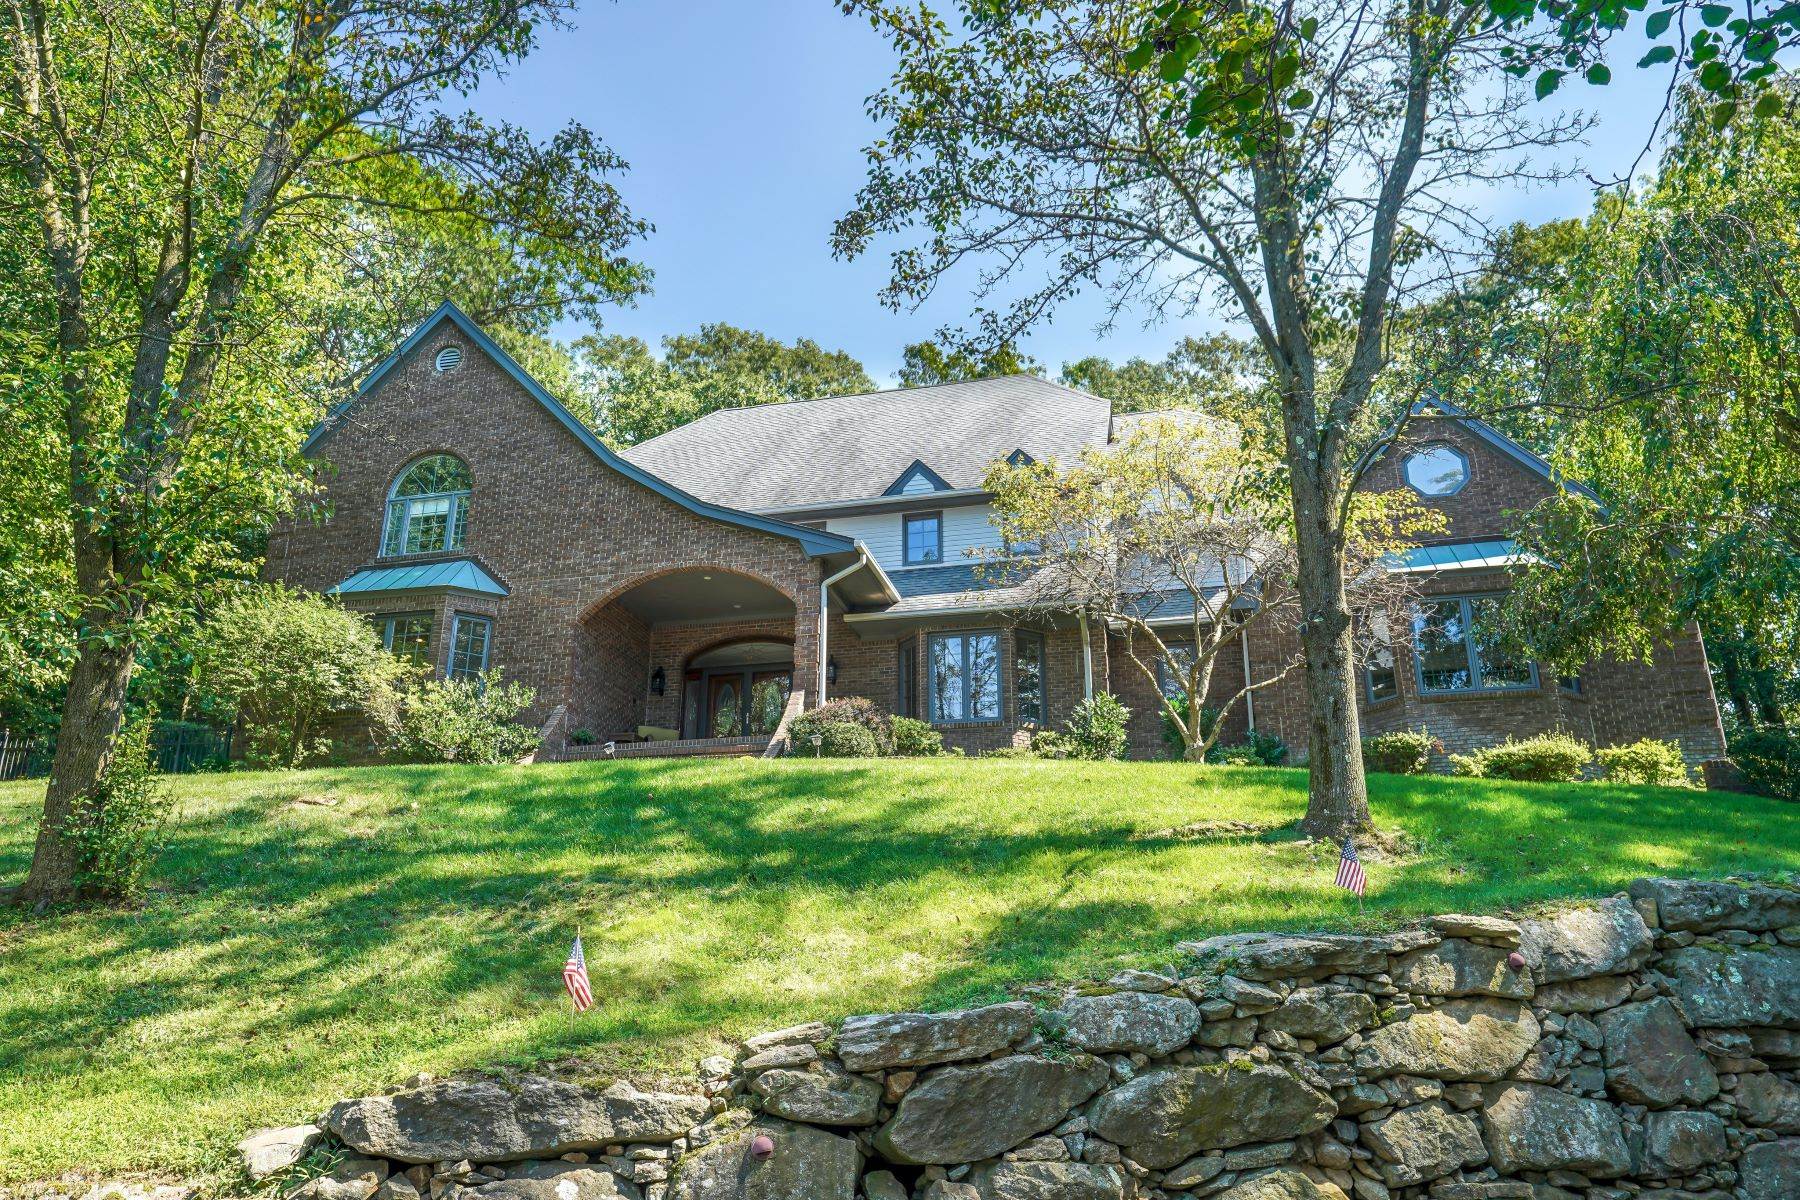 Single Family Homes for Active at Stunning Custom Built Home 14 North Ridge Road Denville, New Jersey 07834 United States